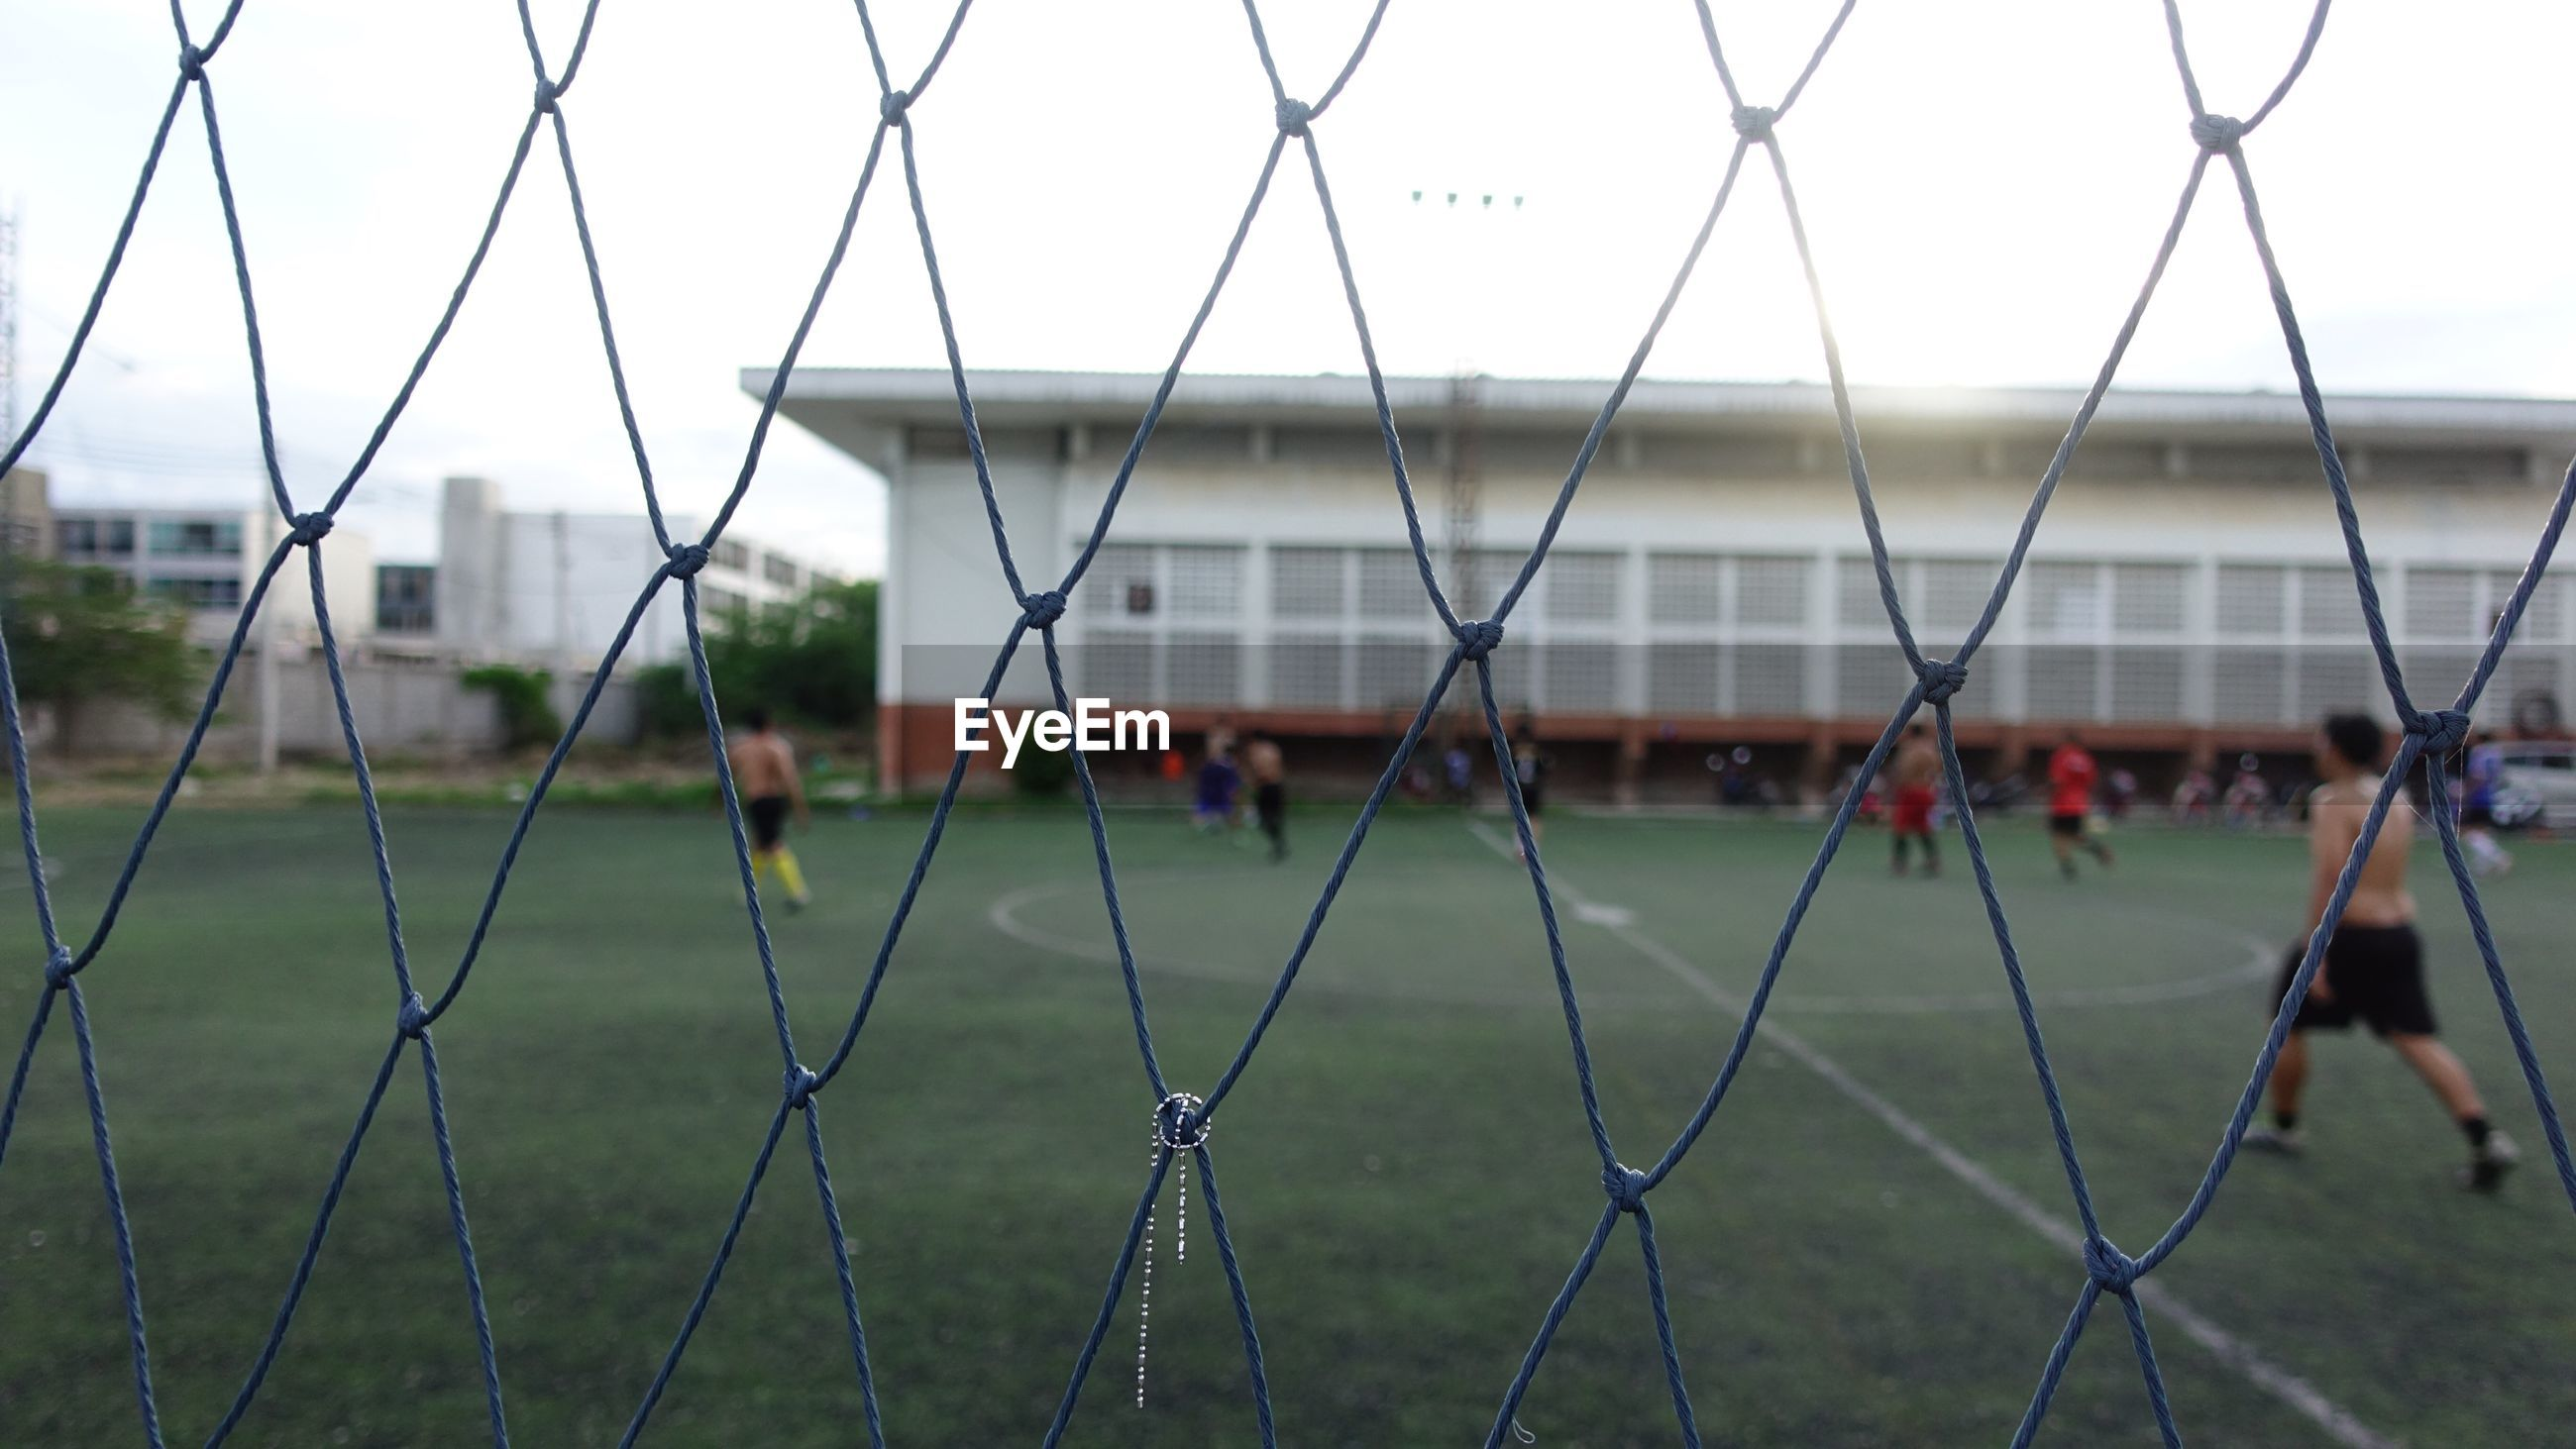 People playing soccer seen through fence